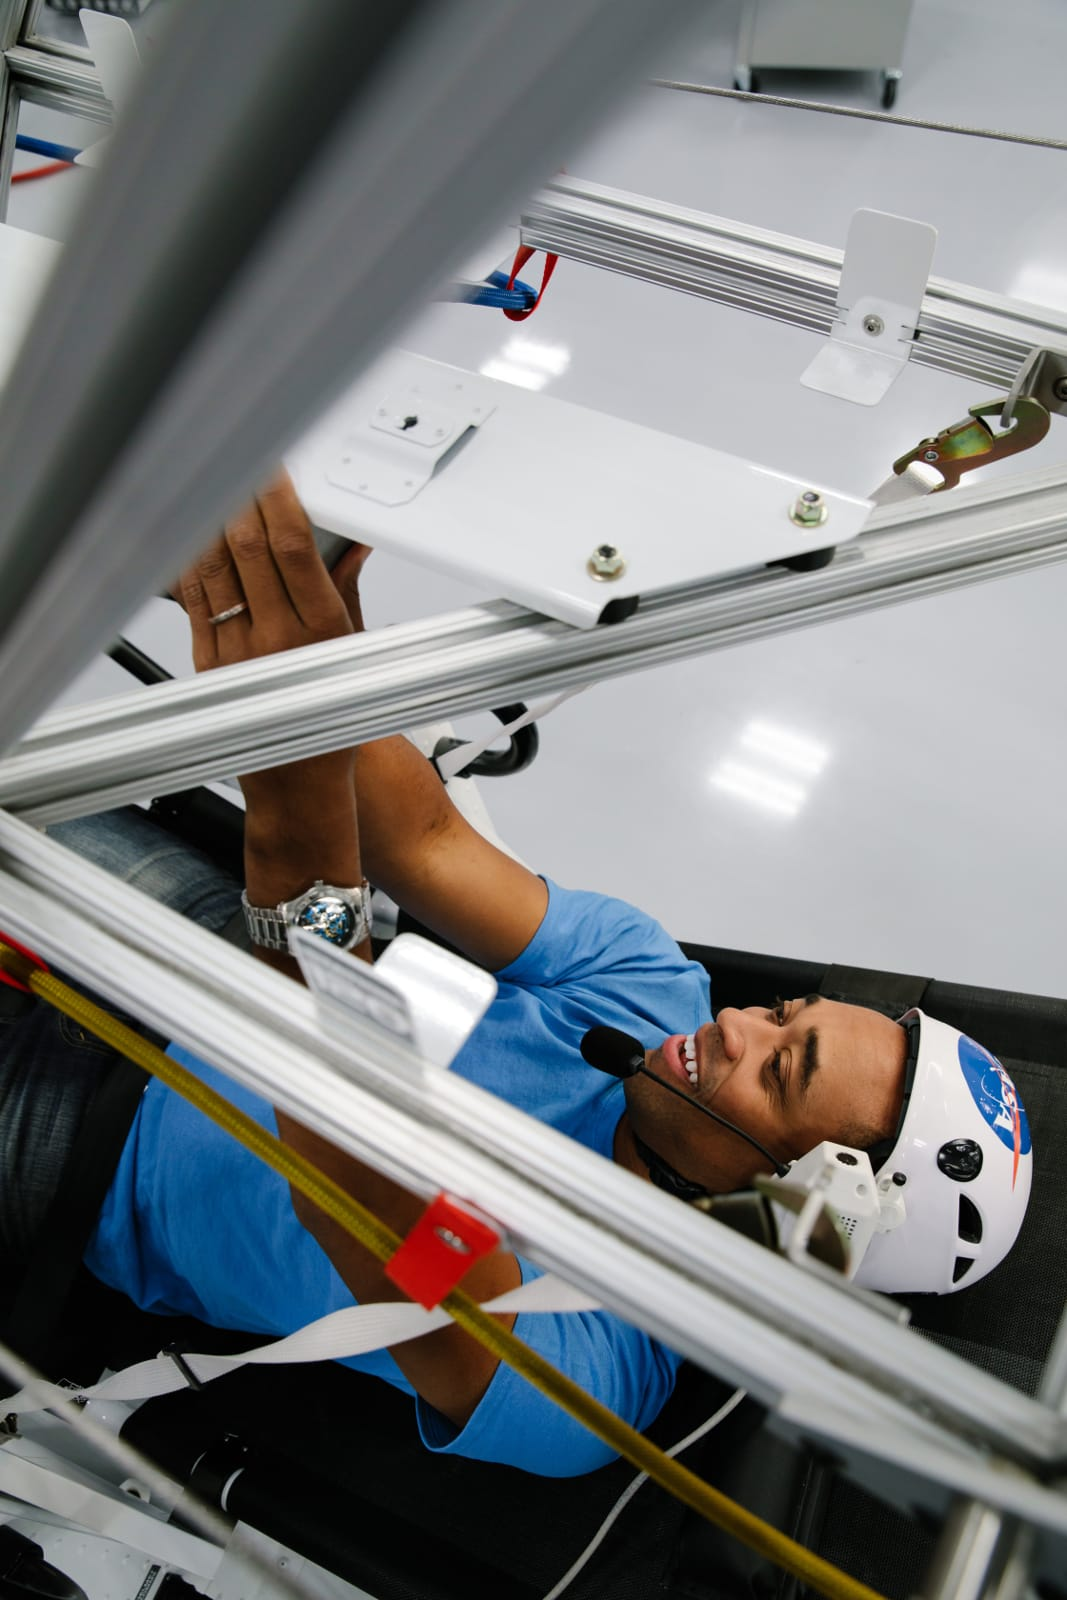 new astronaut training experience center opens feb  10 at